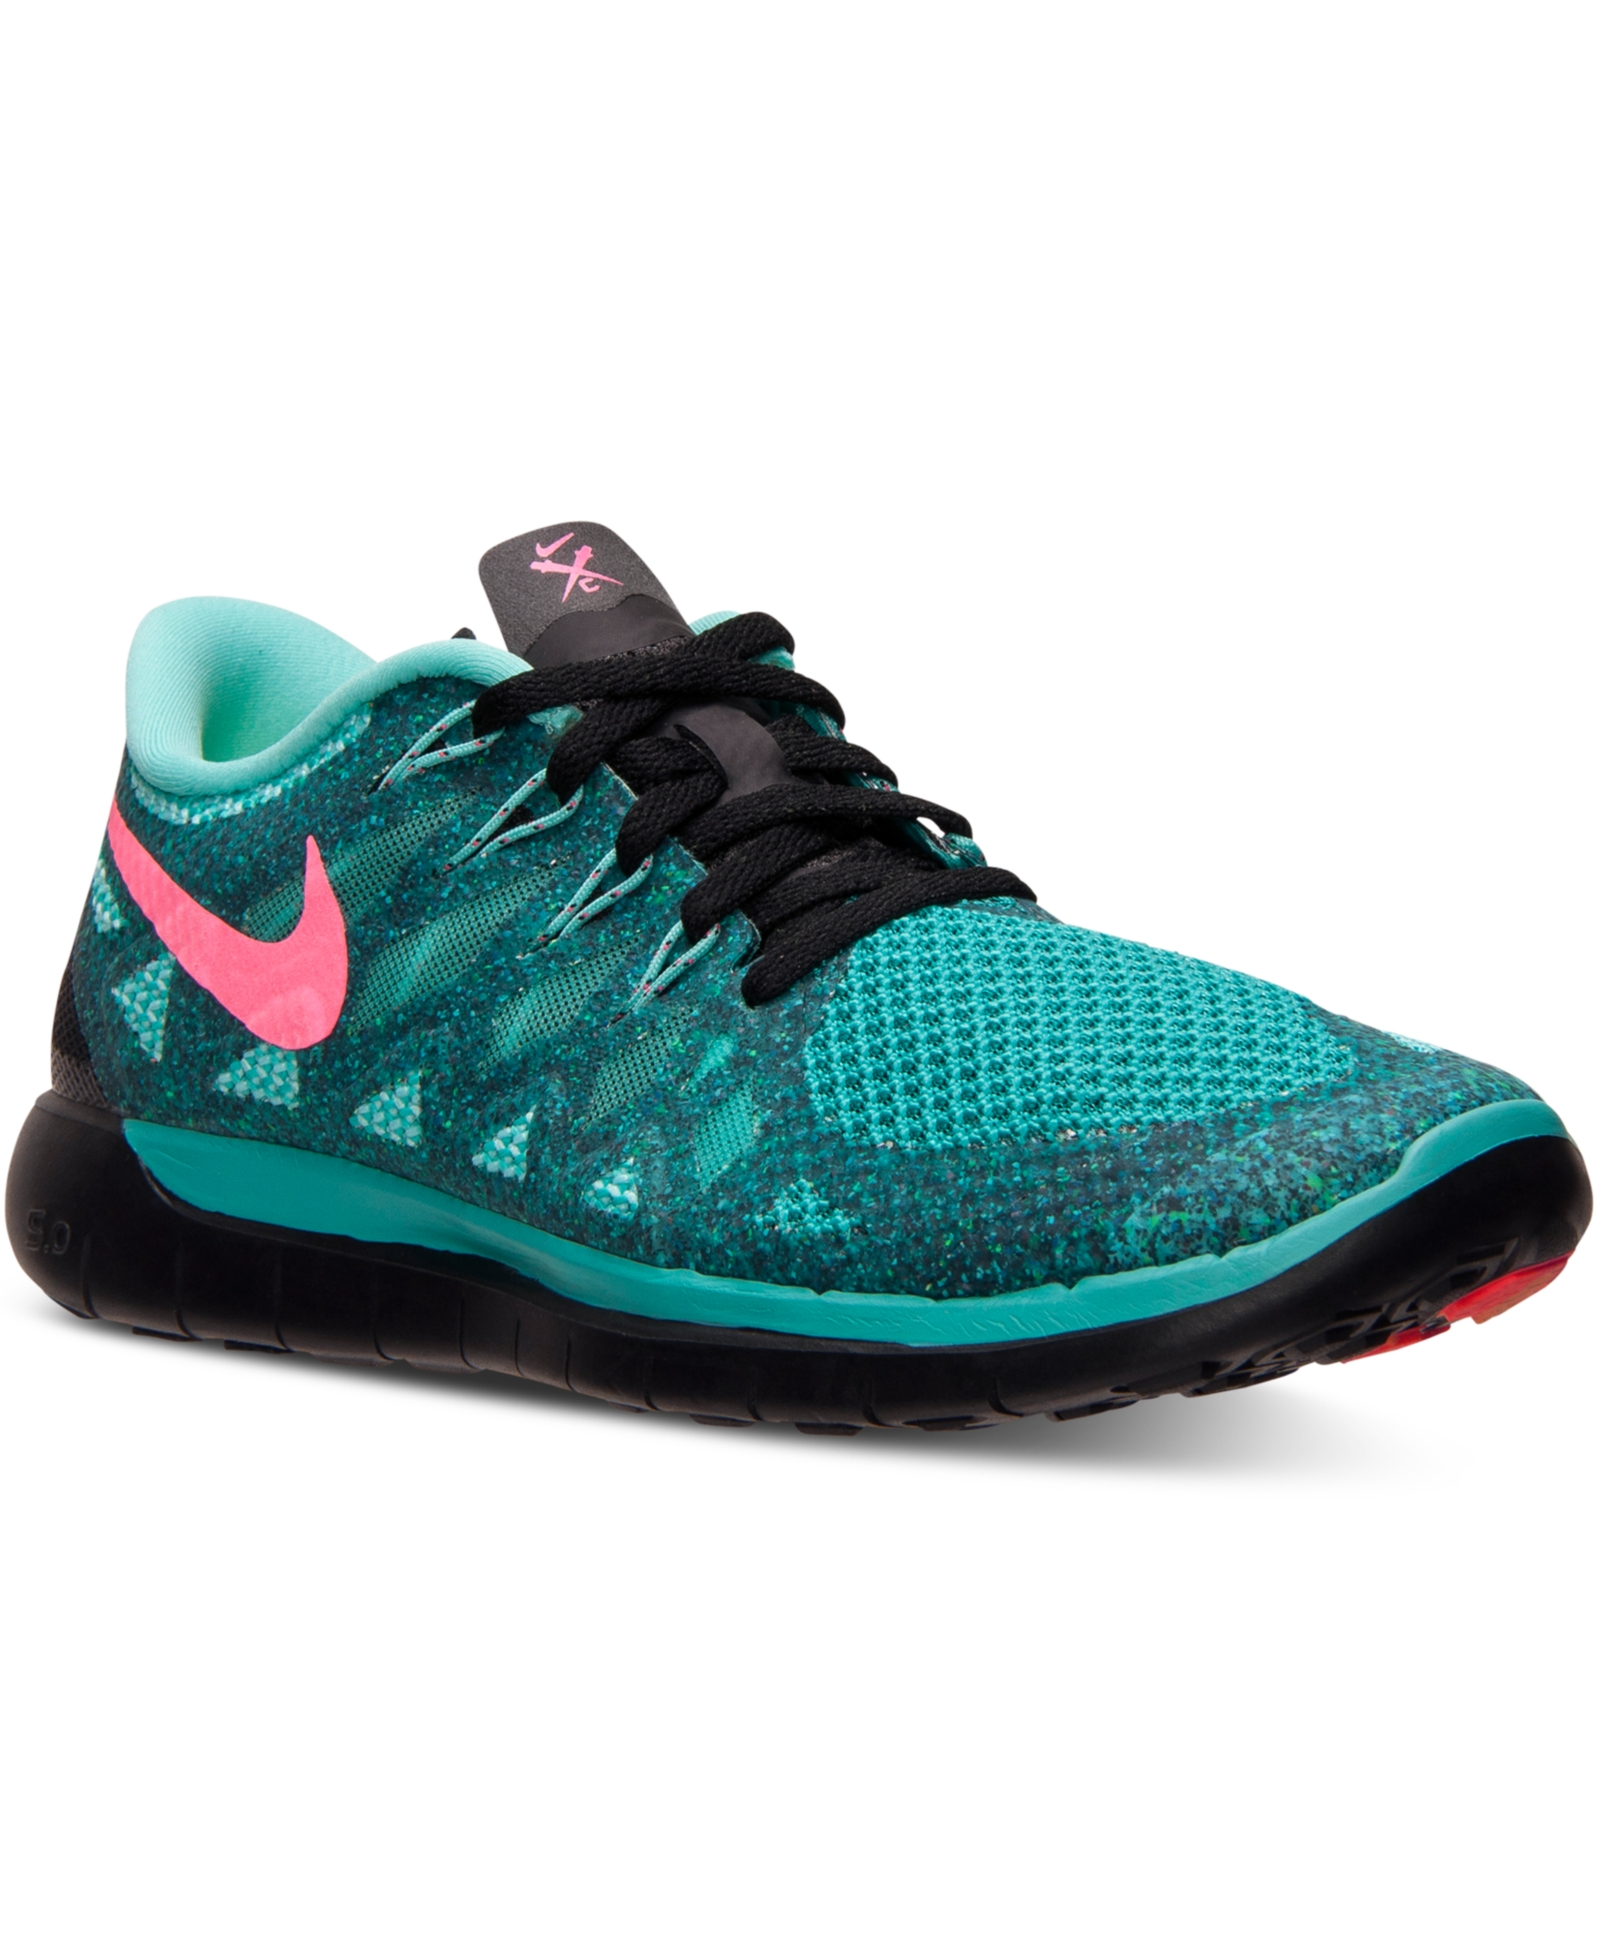 quality design 7edf2 f0f29 ... hot nike women s free 5.0 2014 running sneakers from finish line nike  shoe 7d728 40834